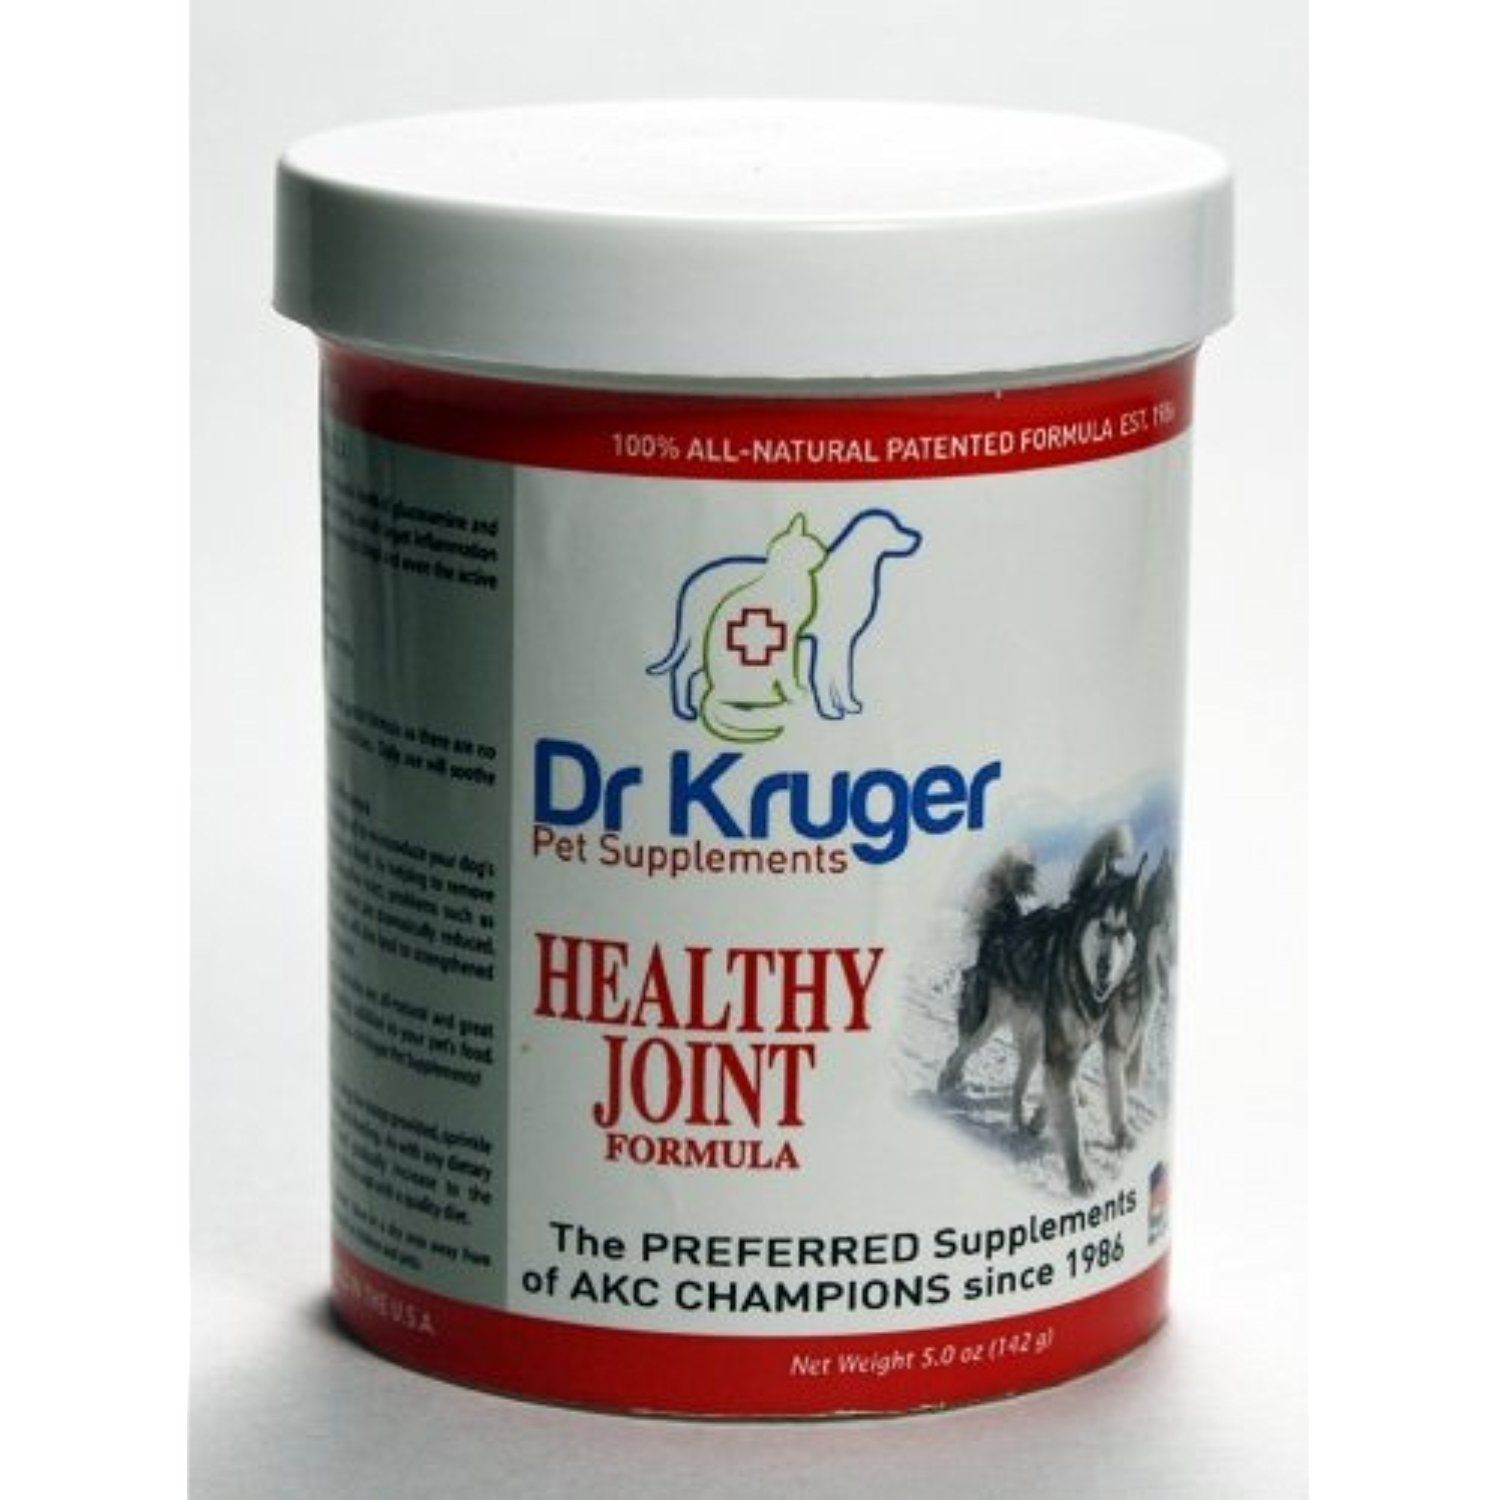 Dr Kruger Healthy Joint 5 Ounce You could find out